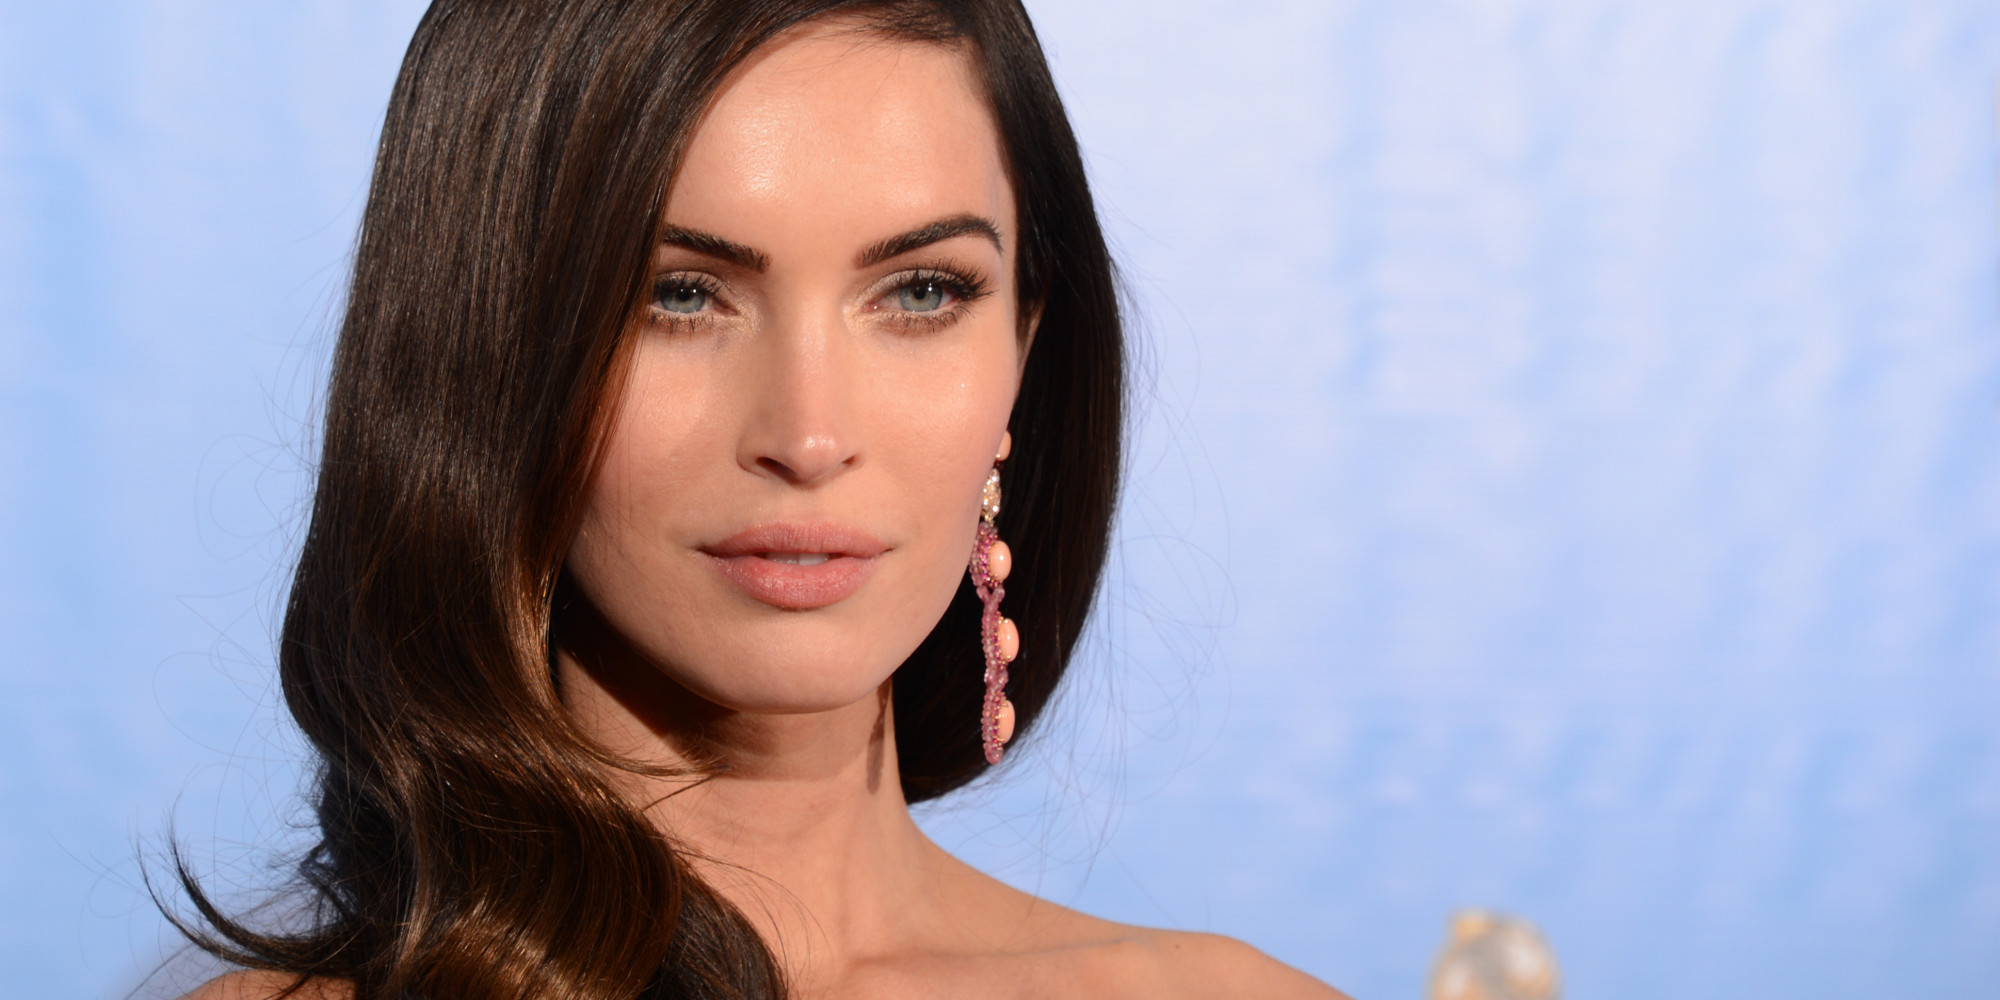 Megan Fox Posts Makeup-Free Selfie After Joining Instagram Megan Fox